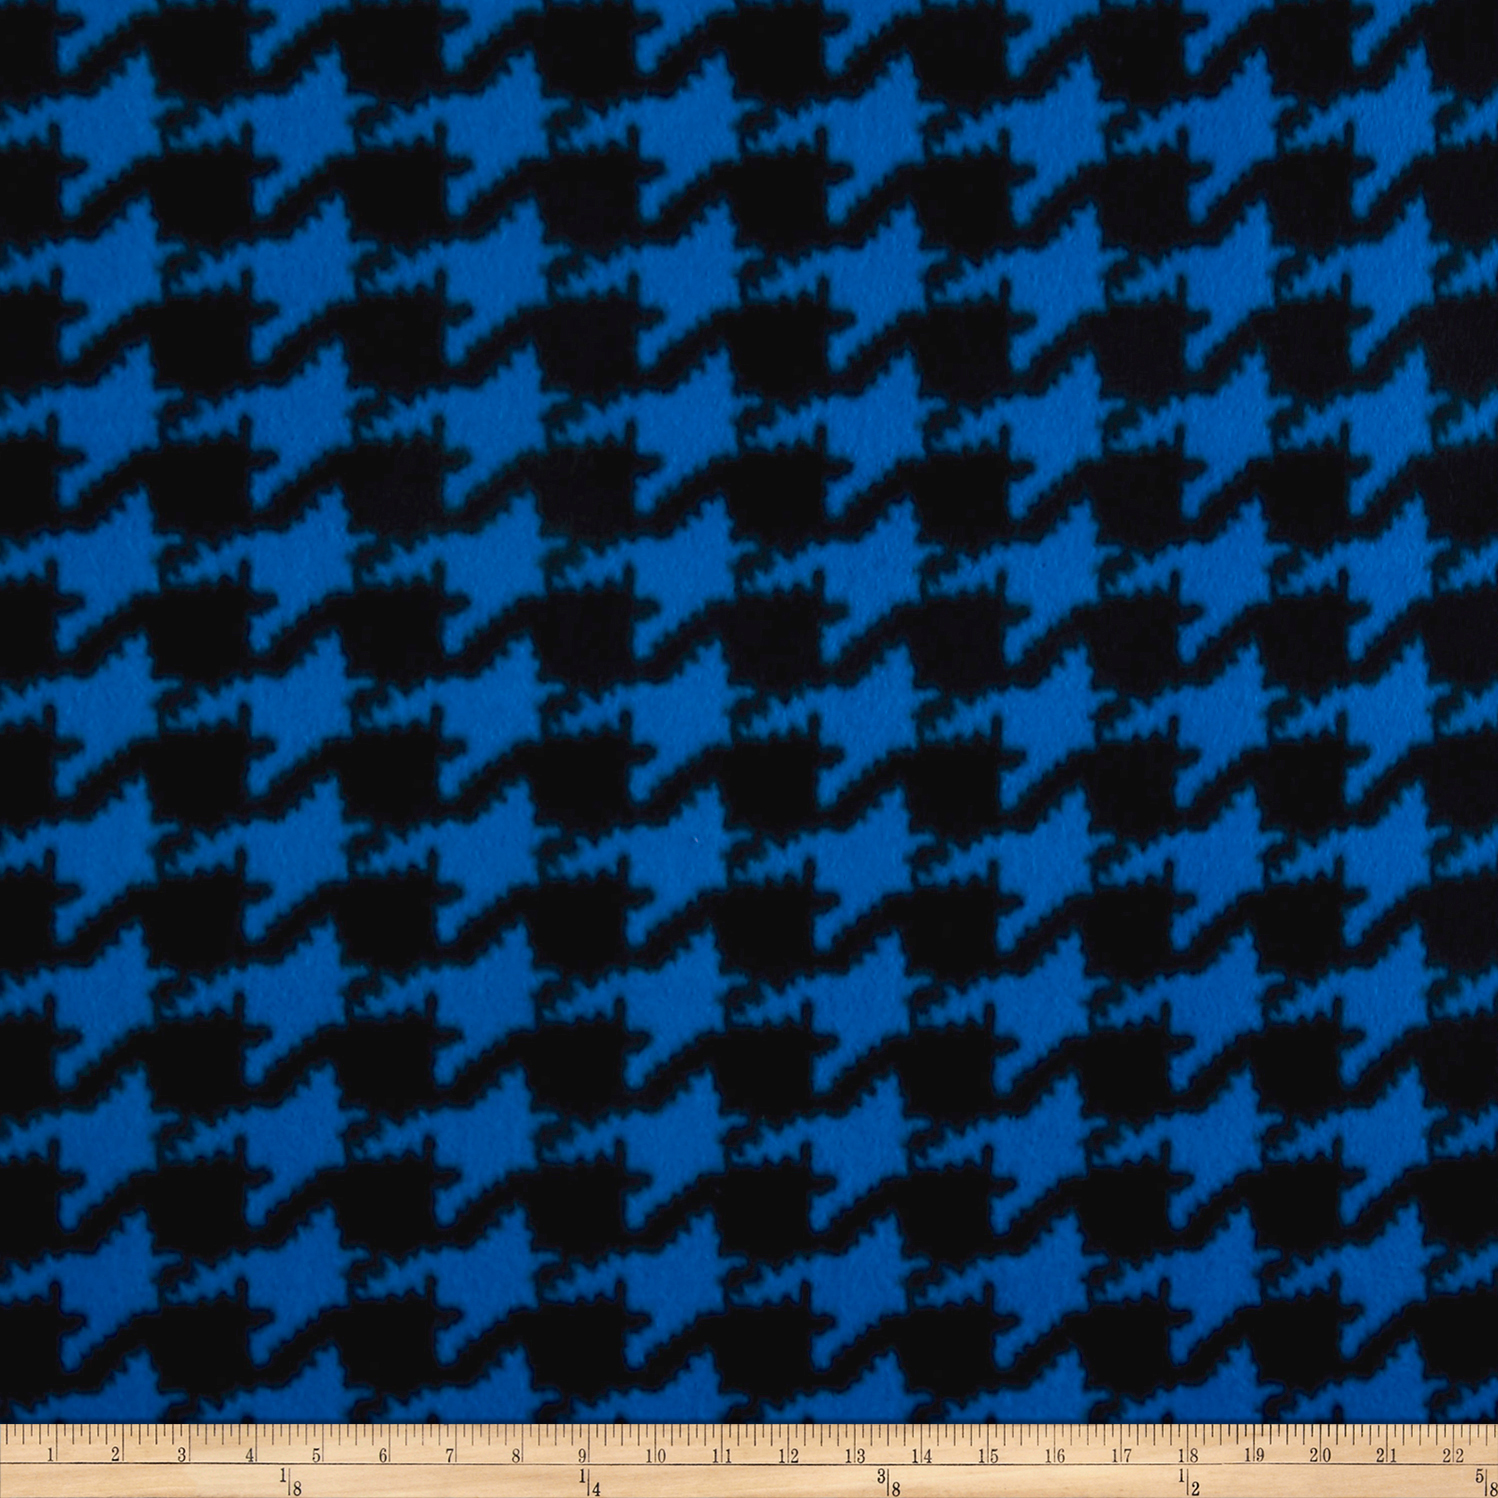 Whisper Coral Fleece Houndstooth Blue Fabric By The Yard by Newcastle in USA